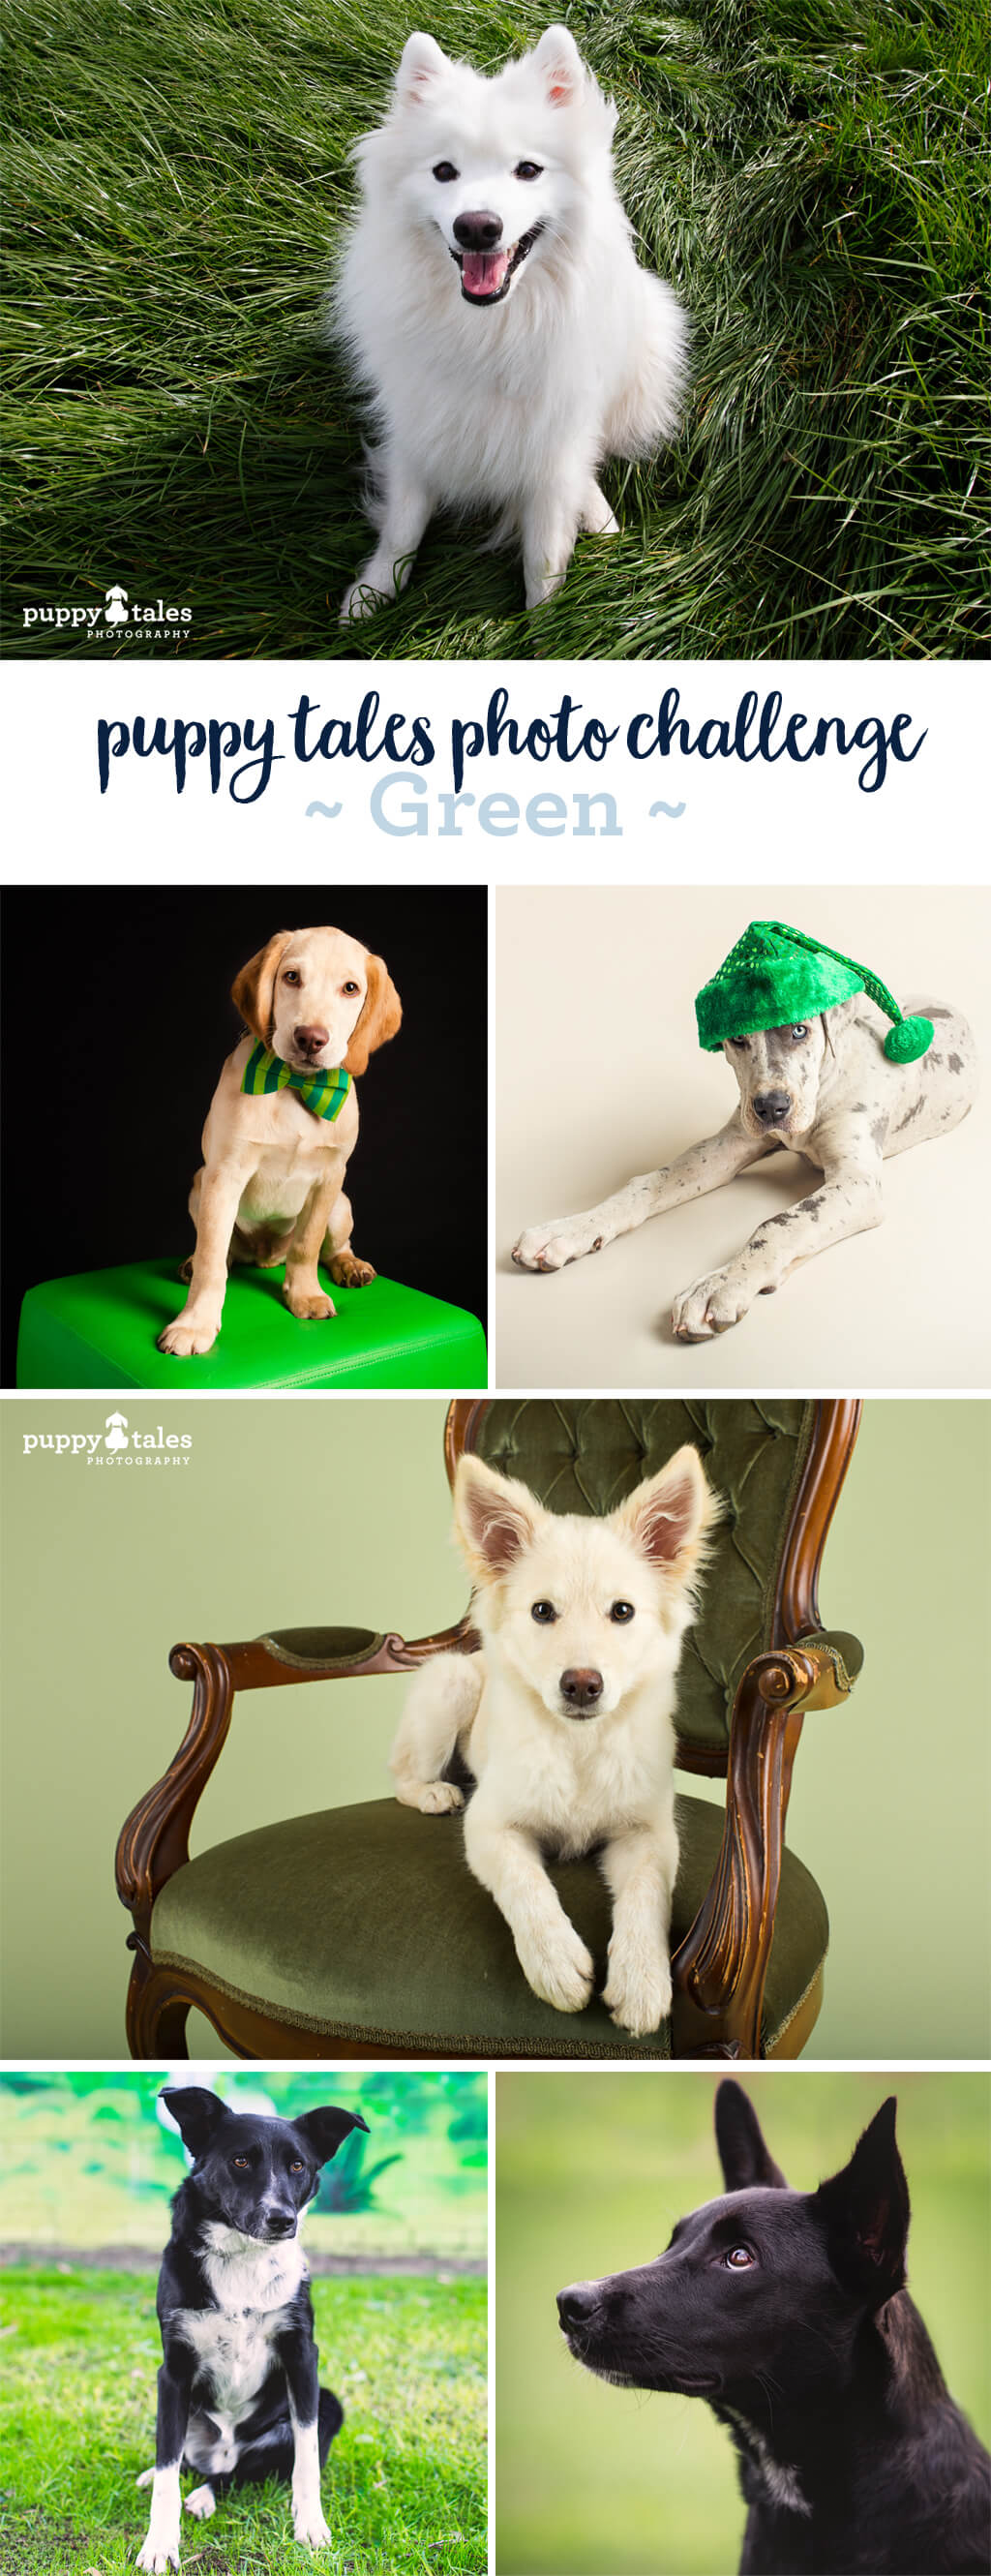 Puppy Tales Photo Challenge - Green